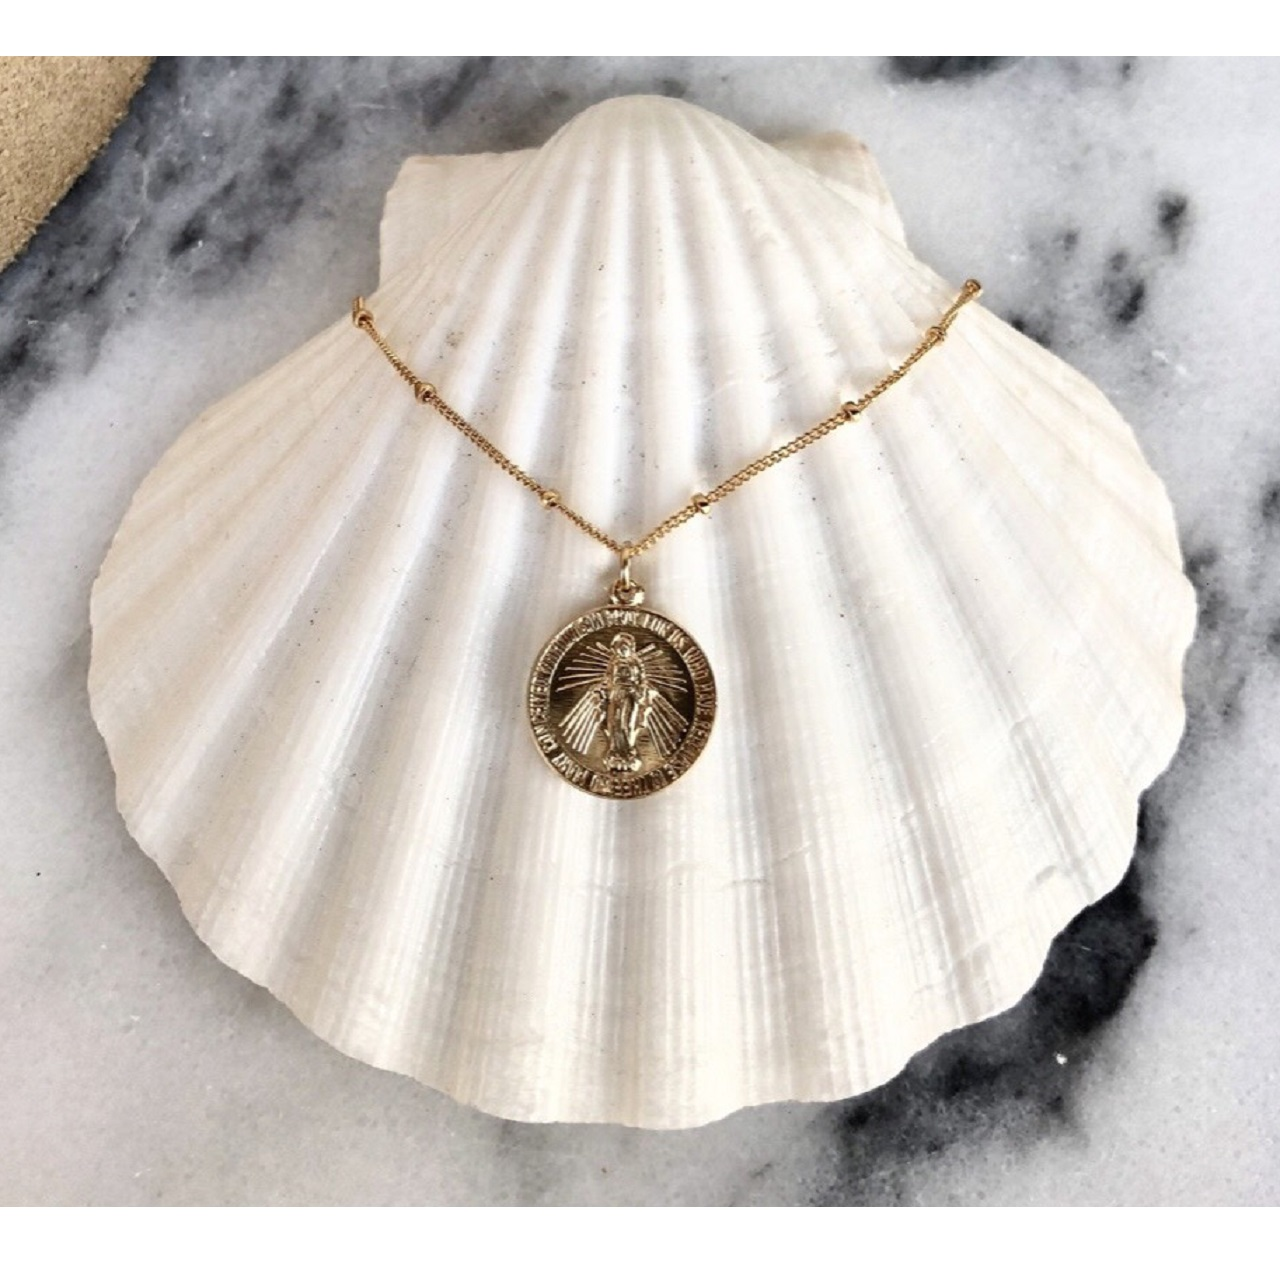 【Lily jewelry】14kgf メダイ コインネックレス